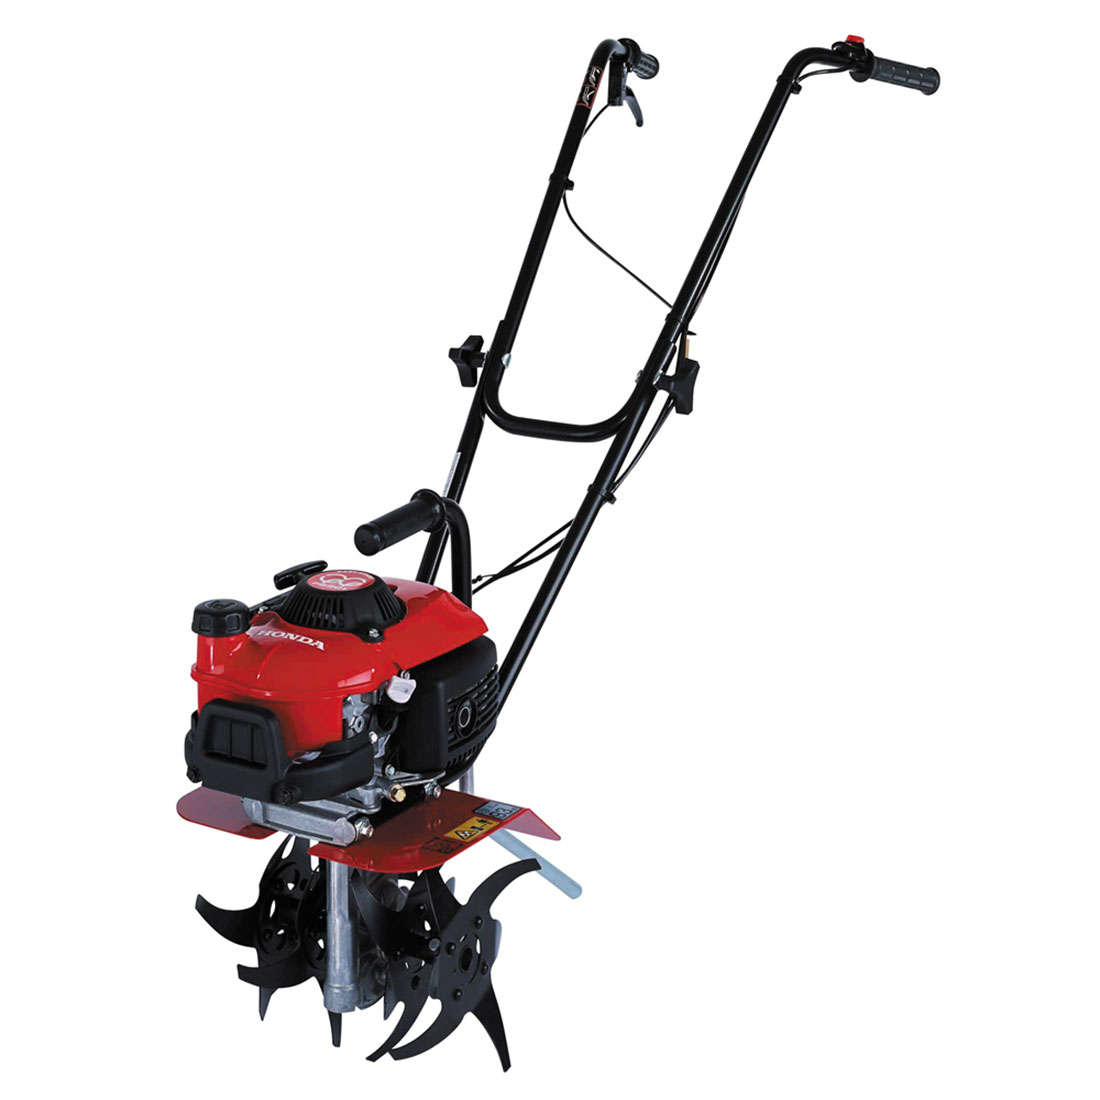 Light-Duty Garden Tiller